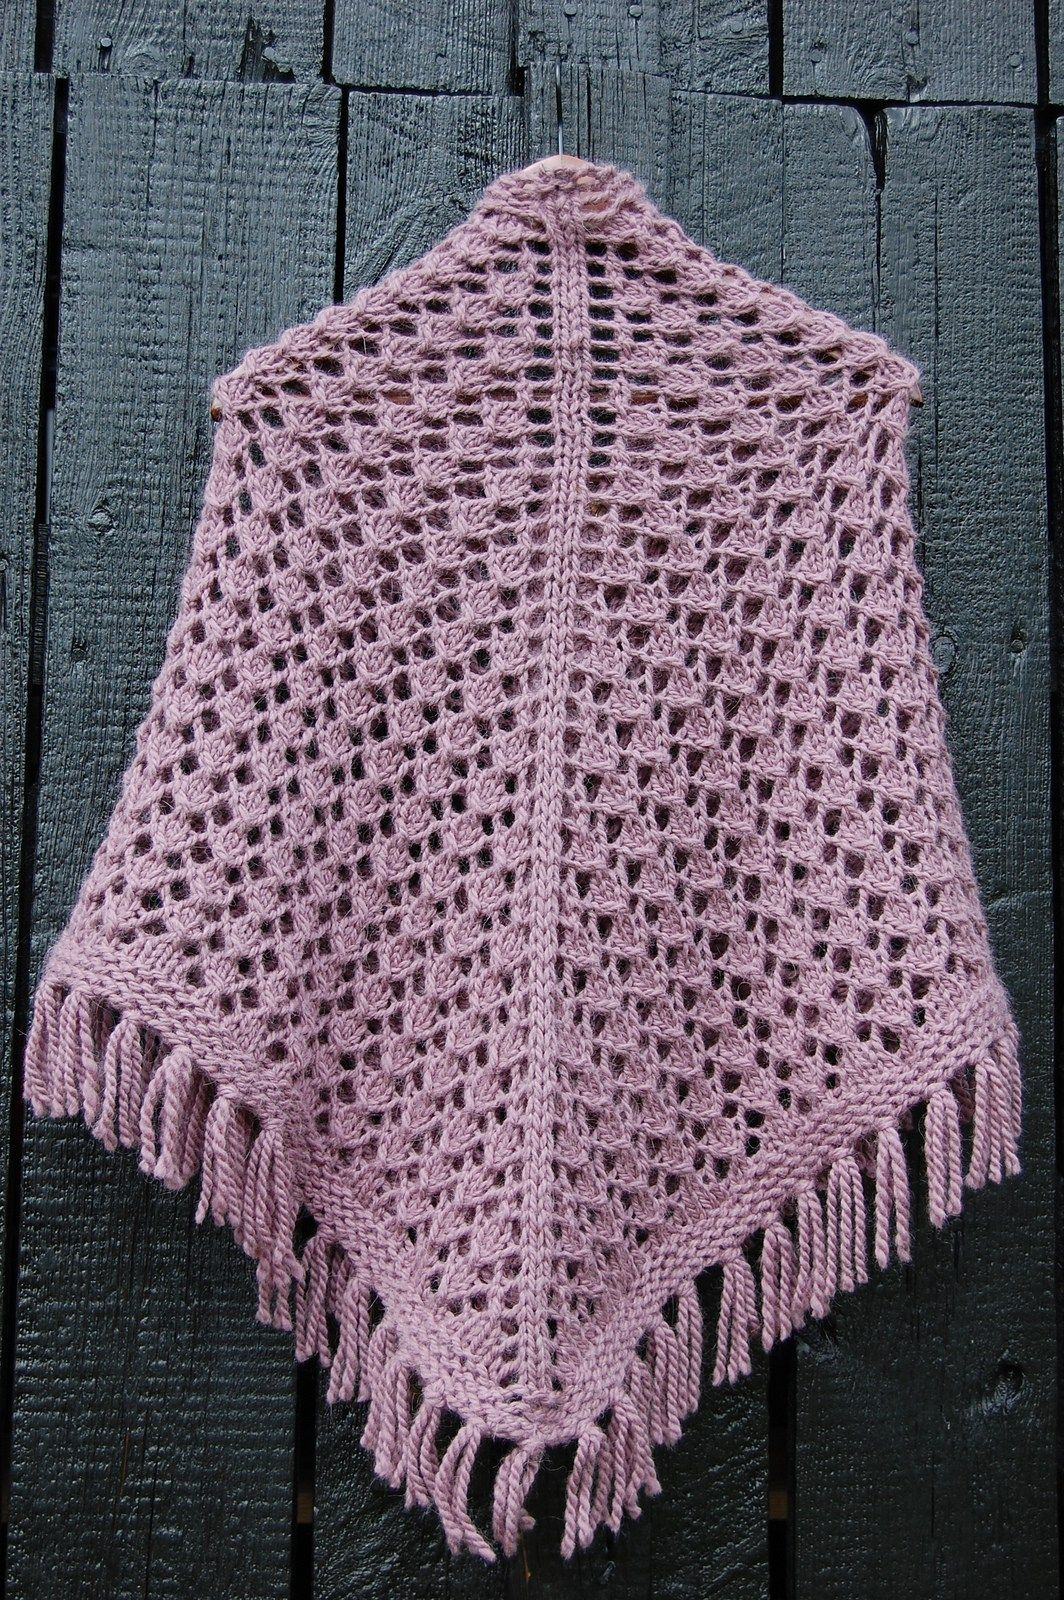 Free Knitting Pattern for Joy of Fall Shawl - This triangle lace